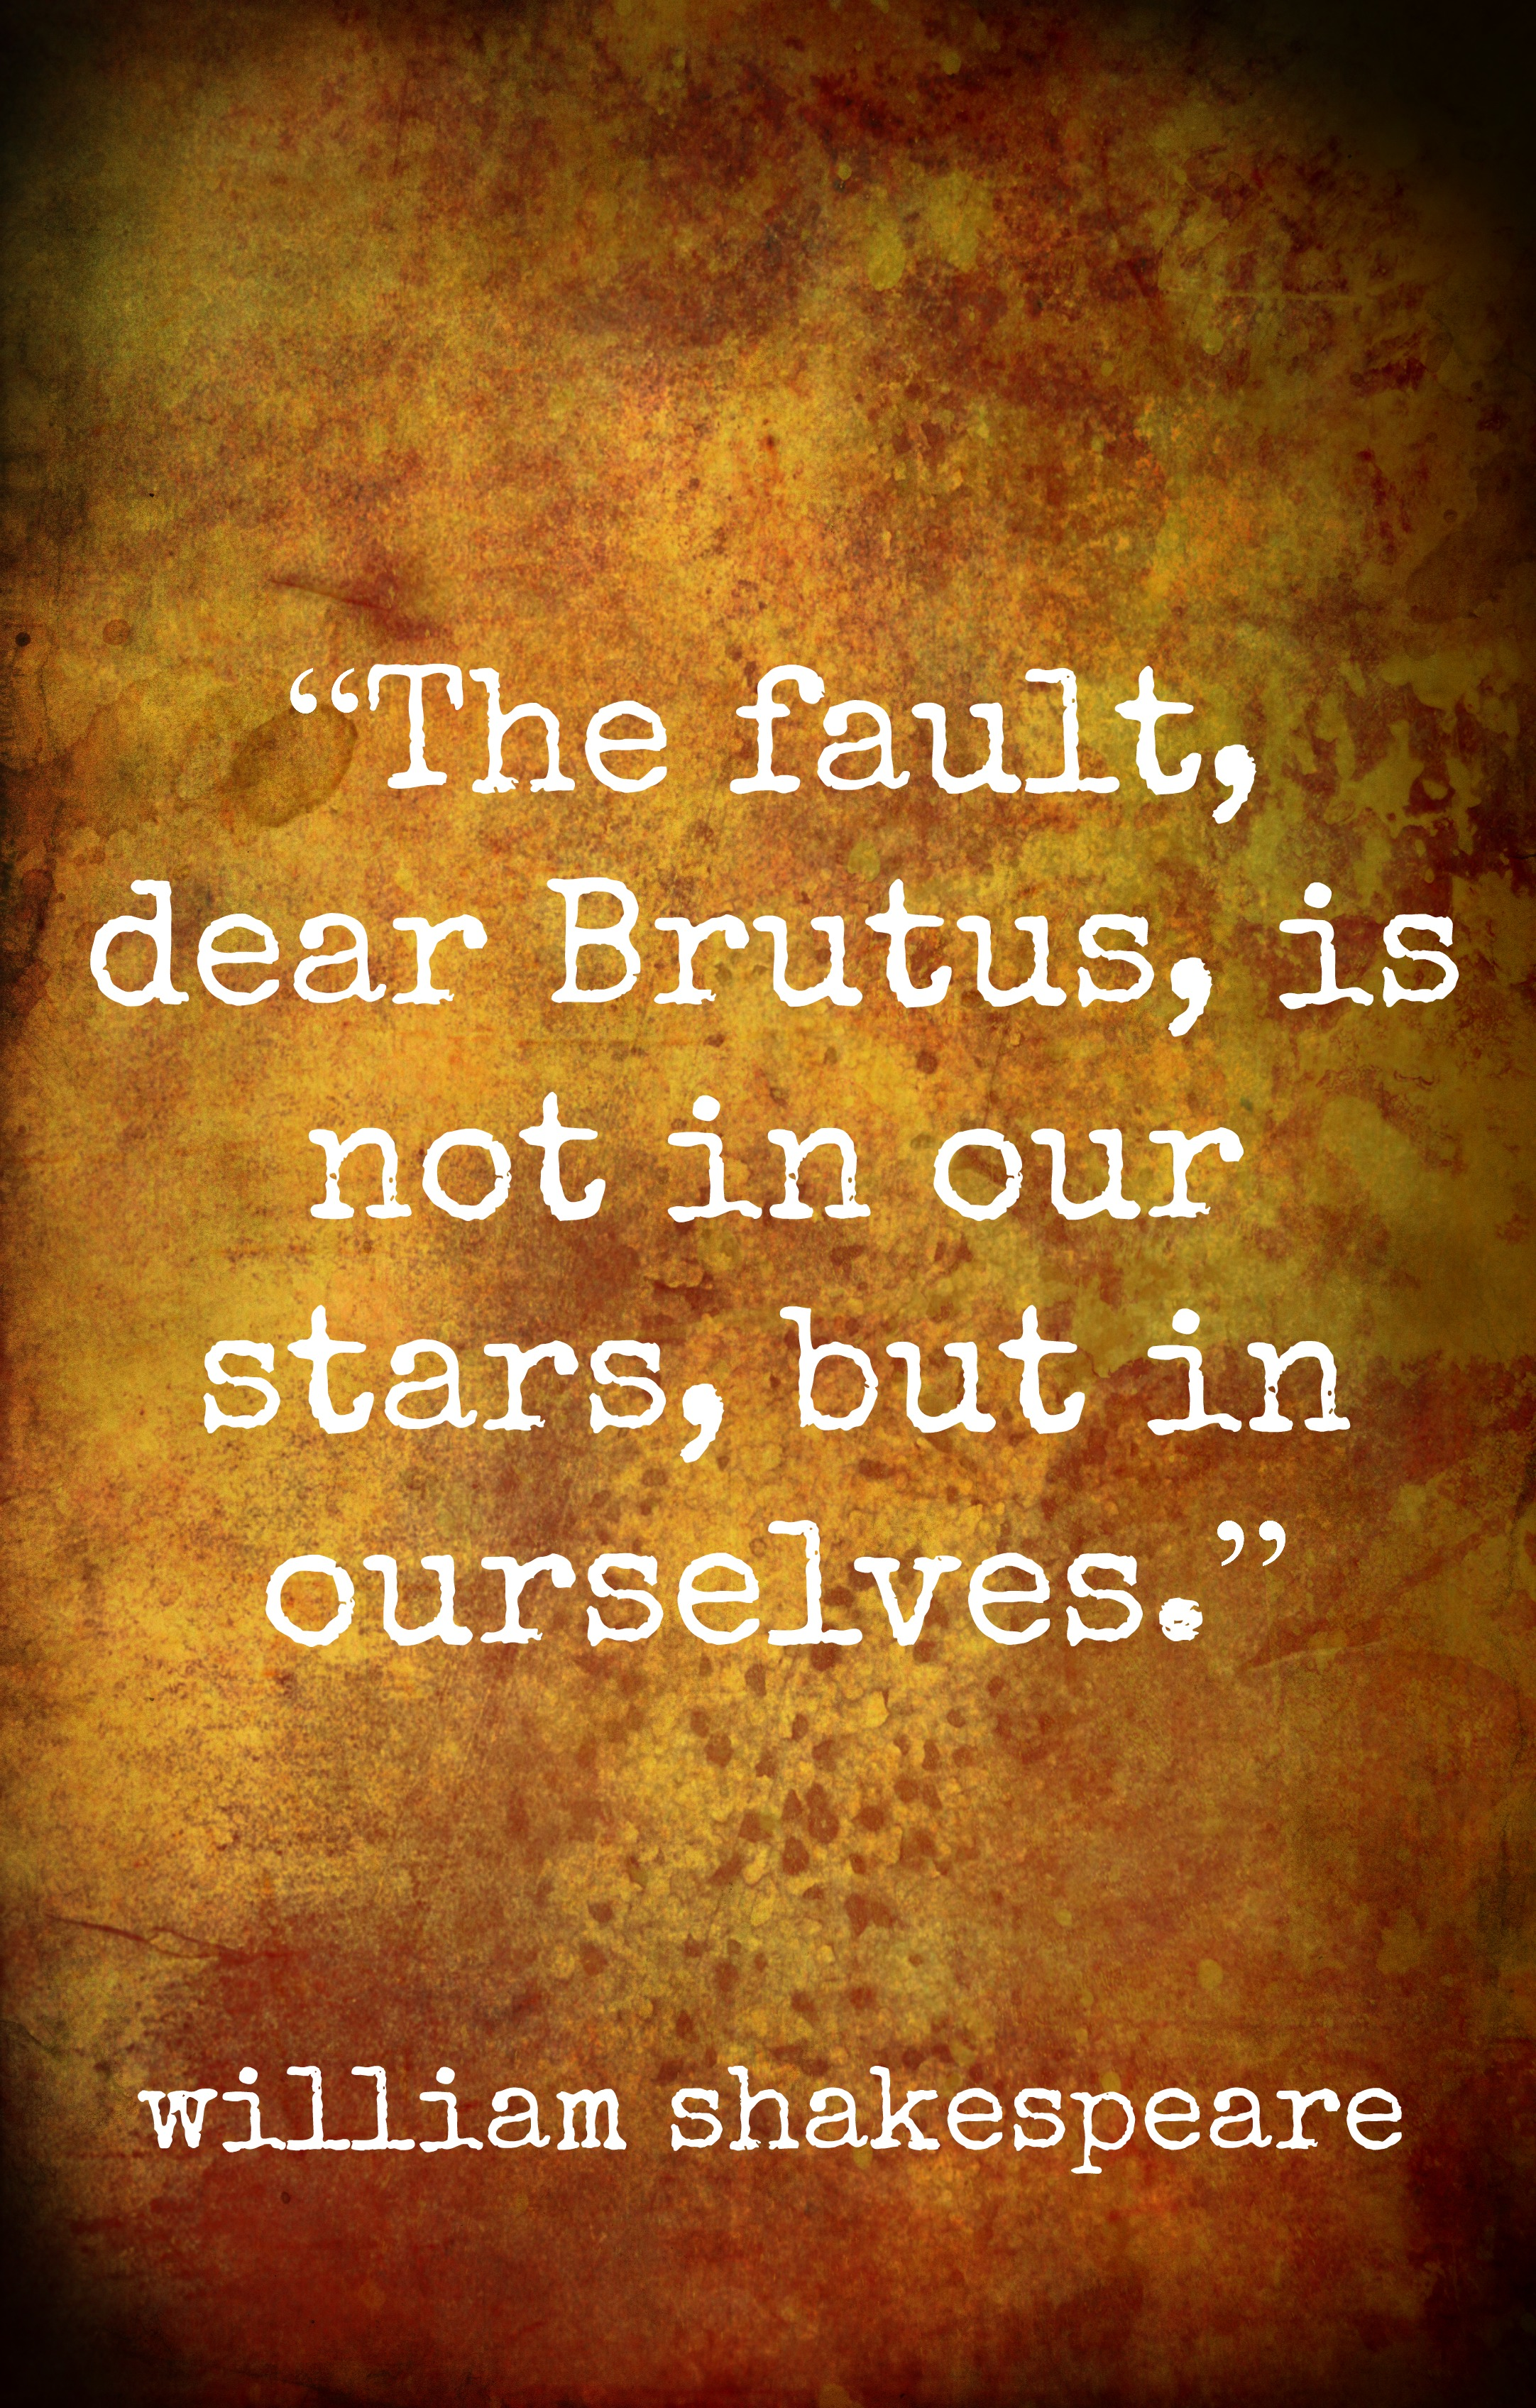 Ides Of March Shakespeare Quotes. QuotesGram